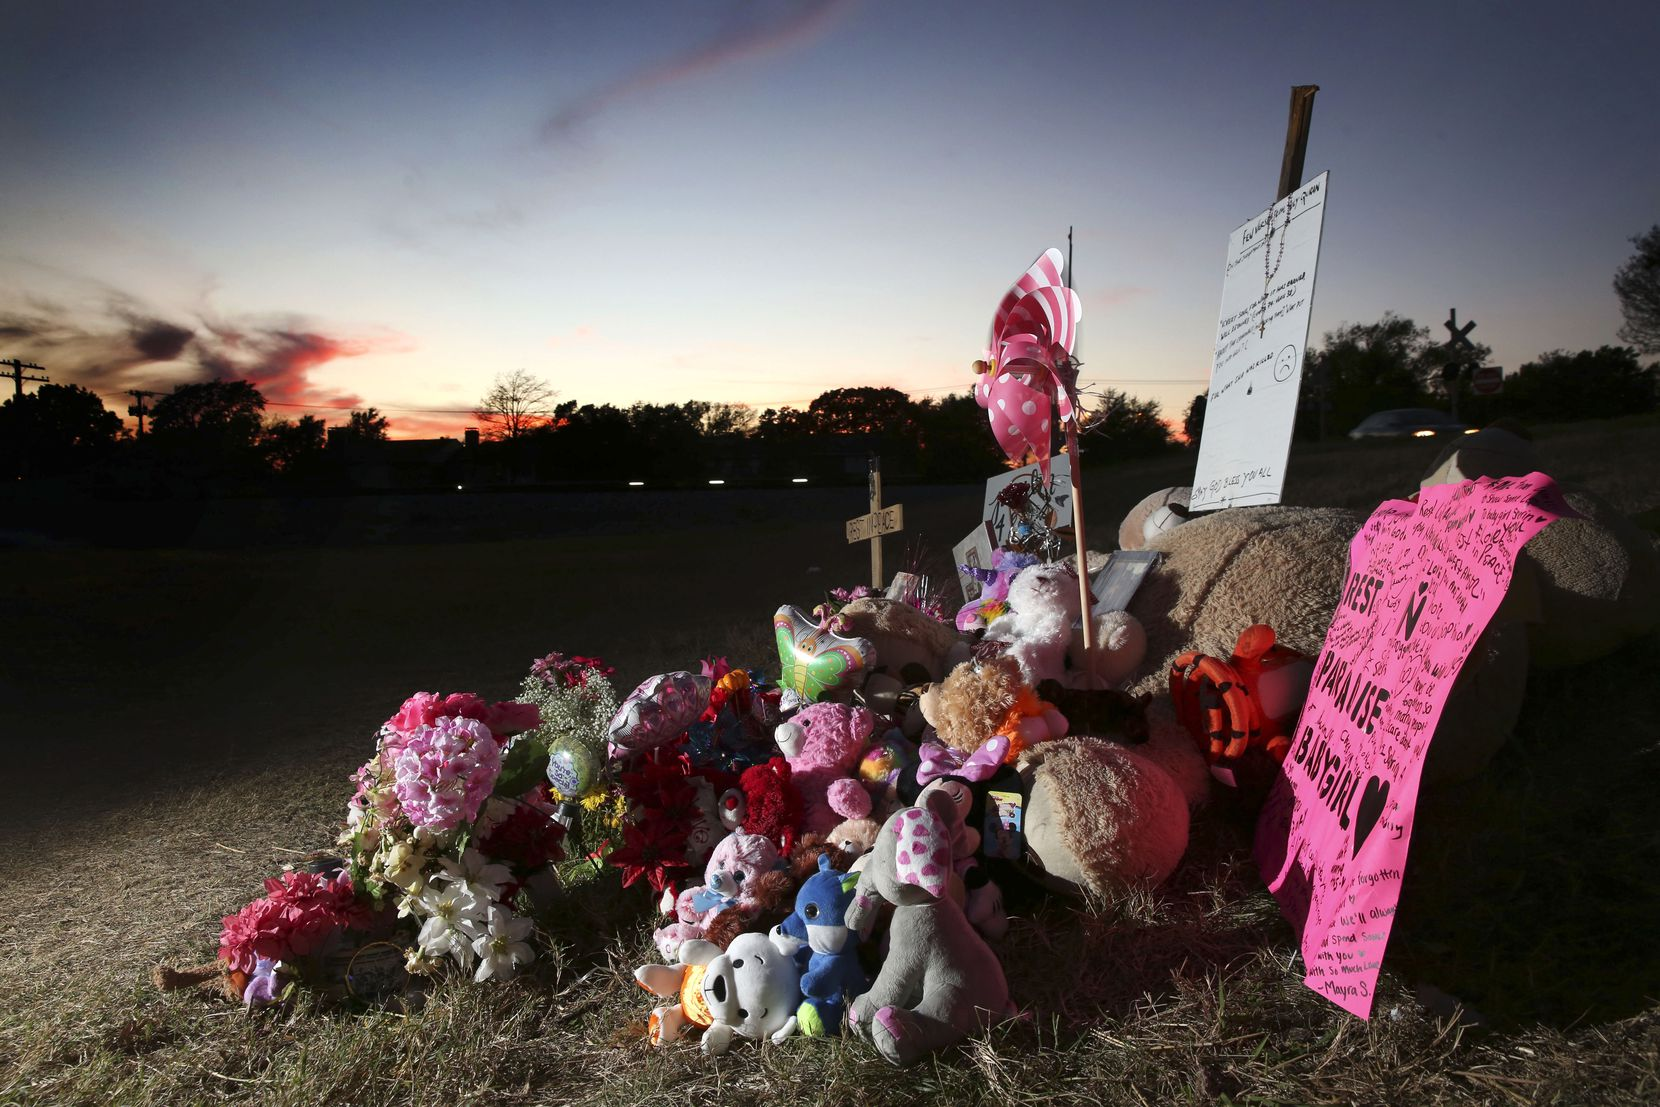 The growing memorial shown on Friday, Nov. 17, 2017, where the body of Sherin Mathews, 3, was found in a culvert near 703 S. Bowser Rd. in Richardson, Texas weeks after she went missing on Oct. 7, 2017.